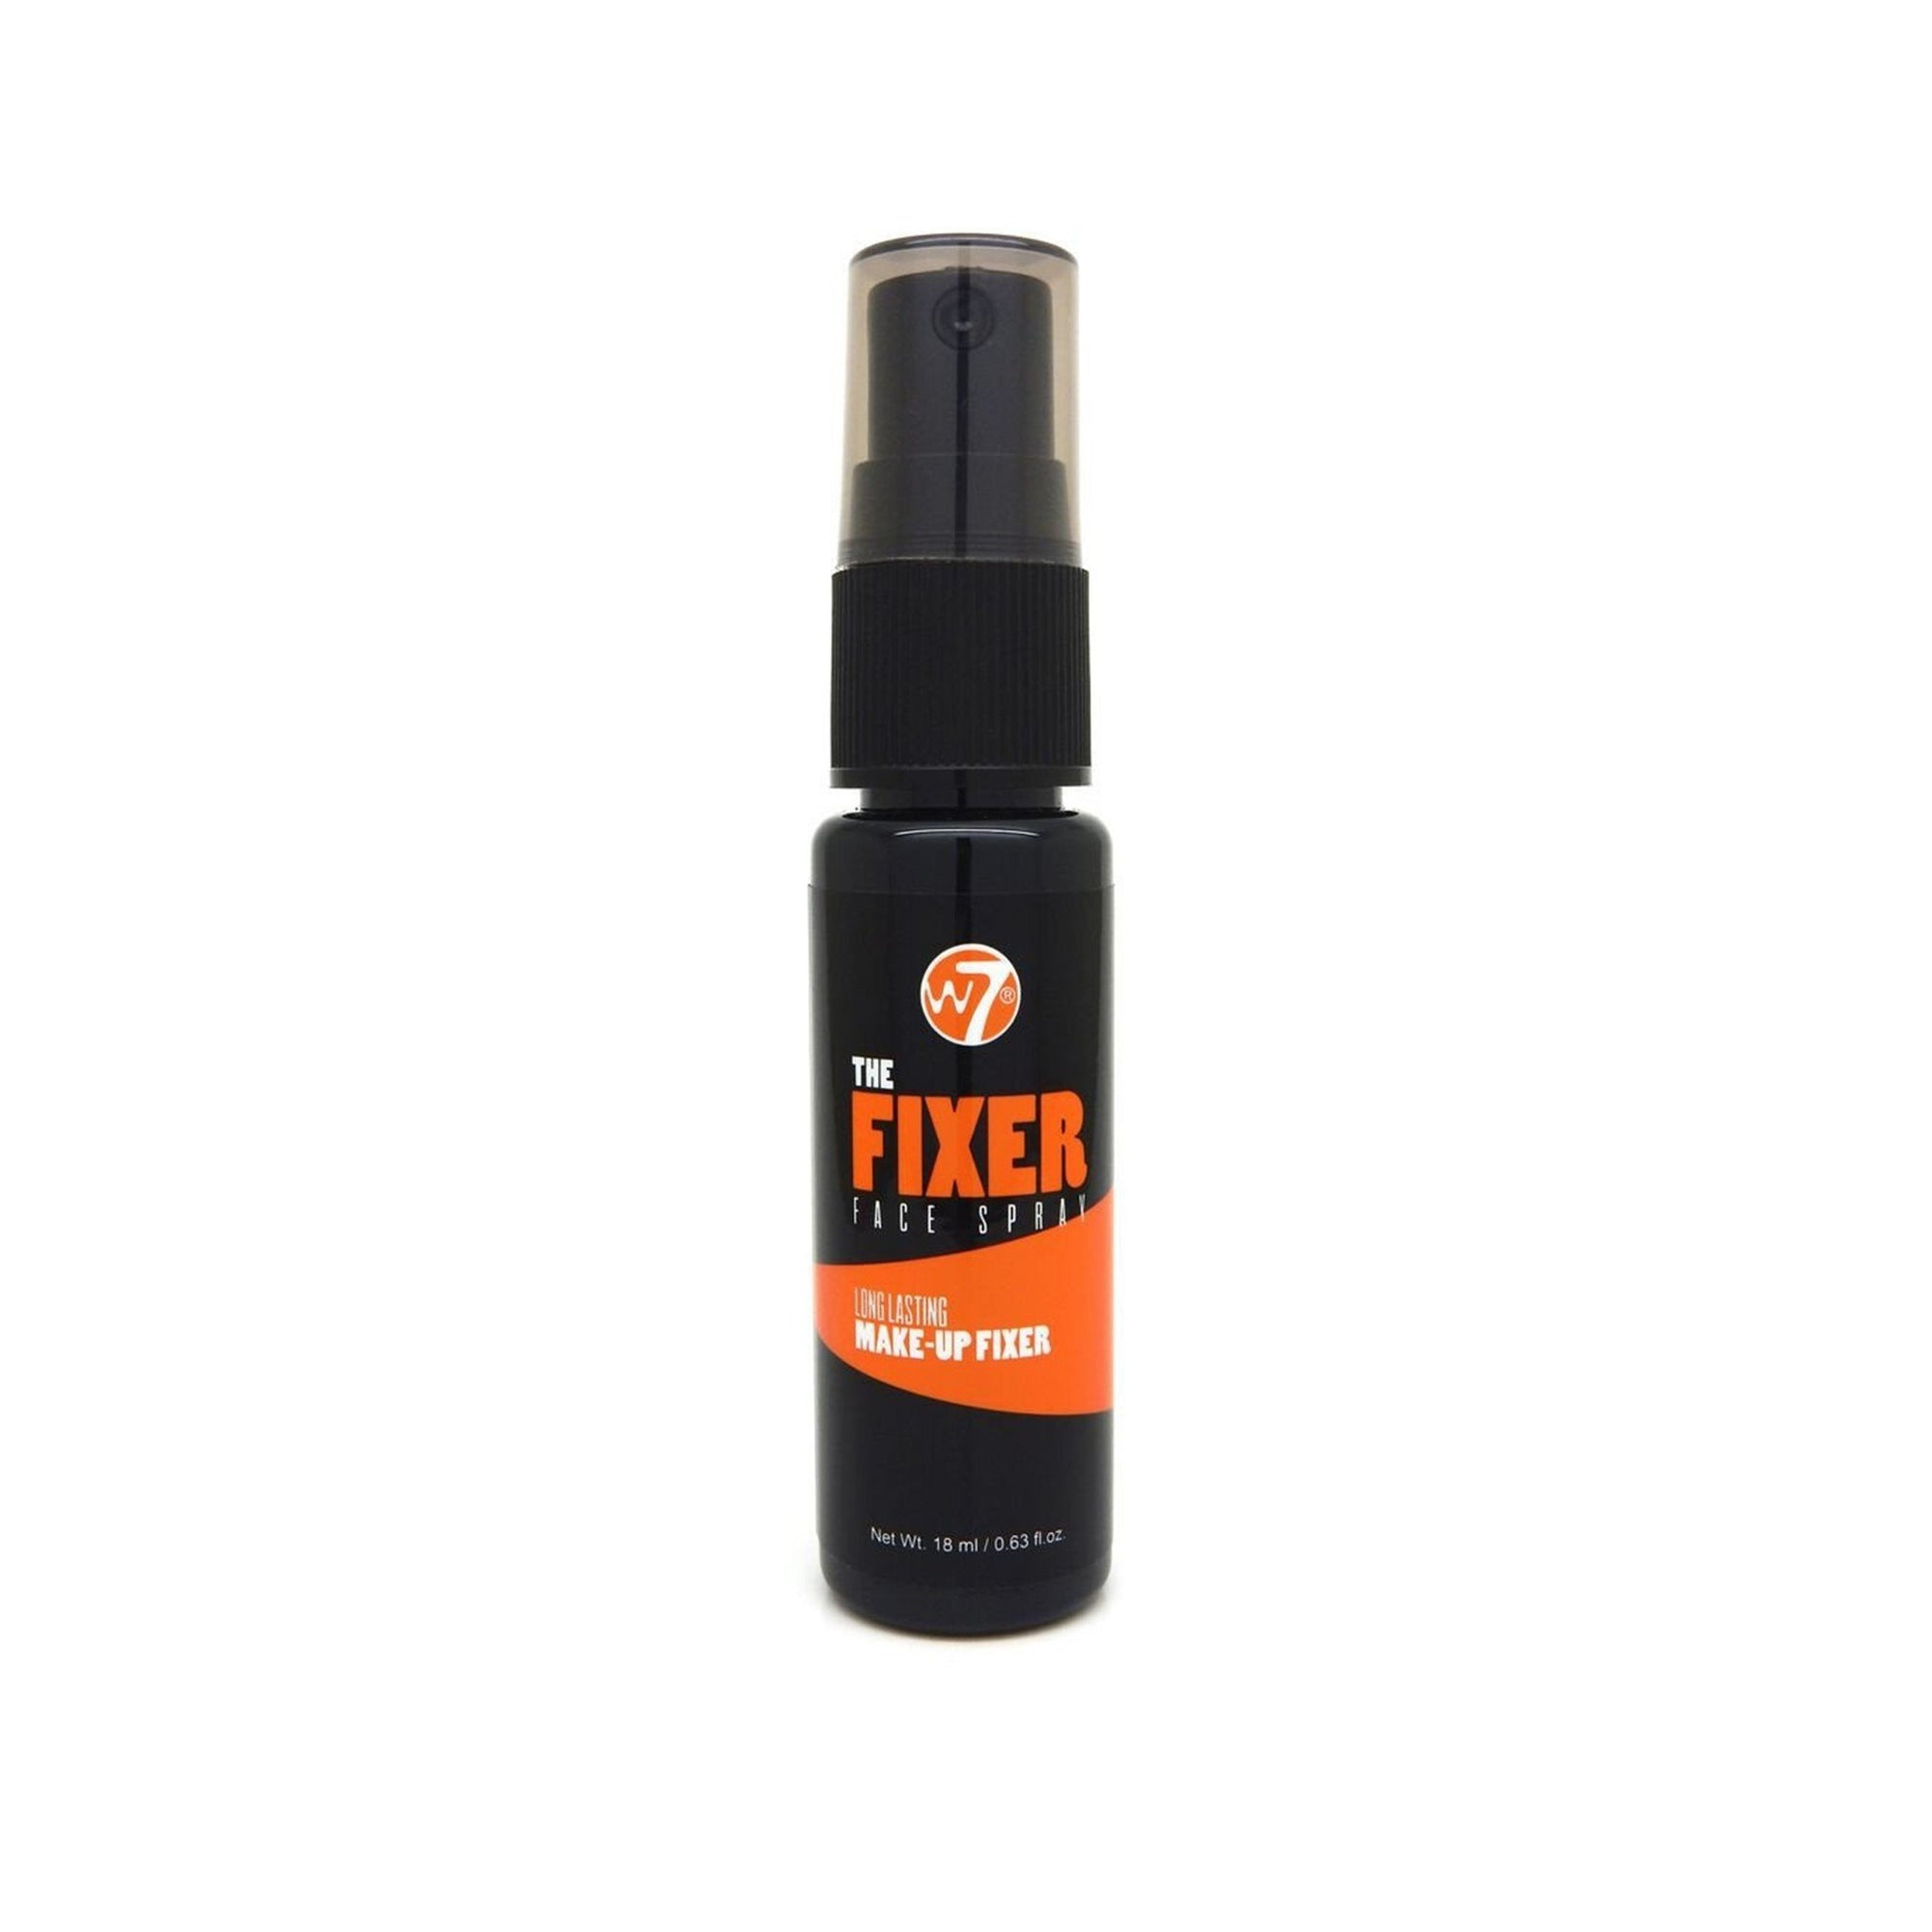 W7 The Fixer Makeup Setting Spray